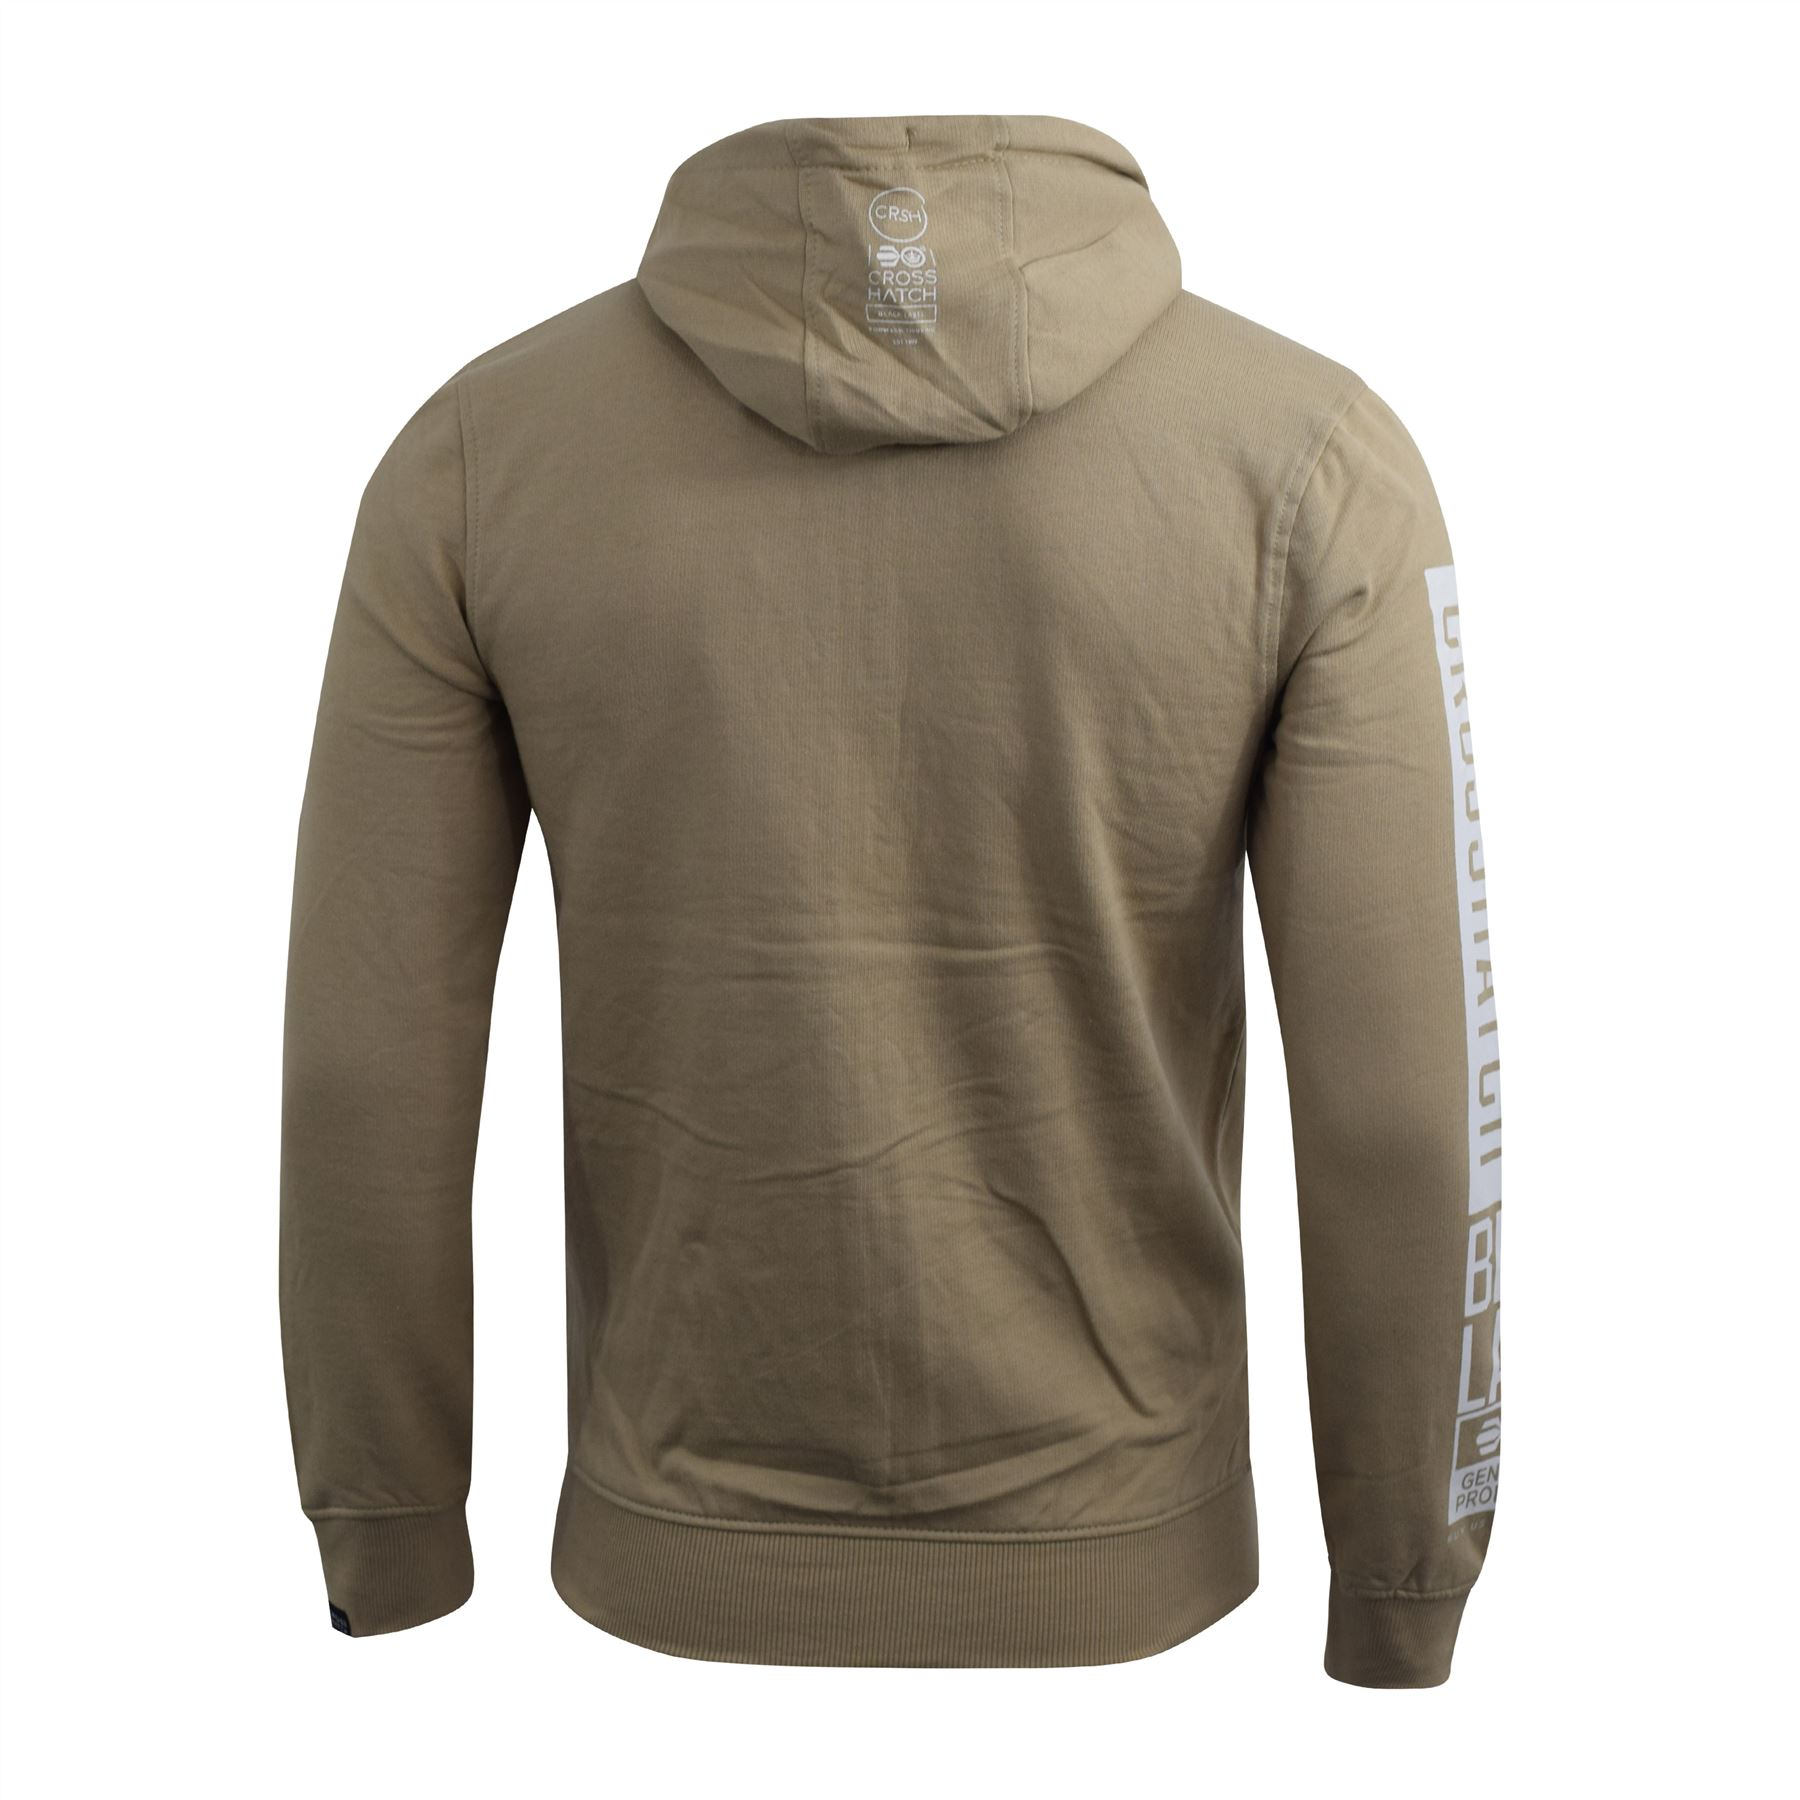 Mens-Crosshatch-Hoodie-Thrive-Full-Zip-Hoody-Pullover-Sweatshirt thumbnail 10